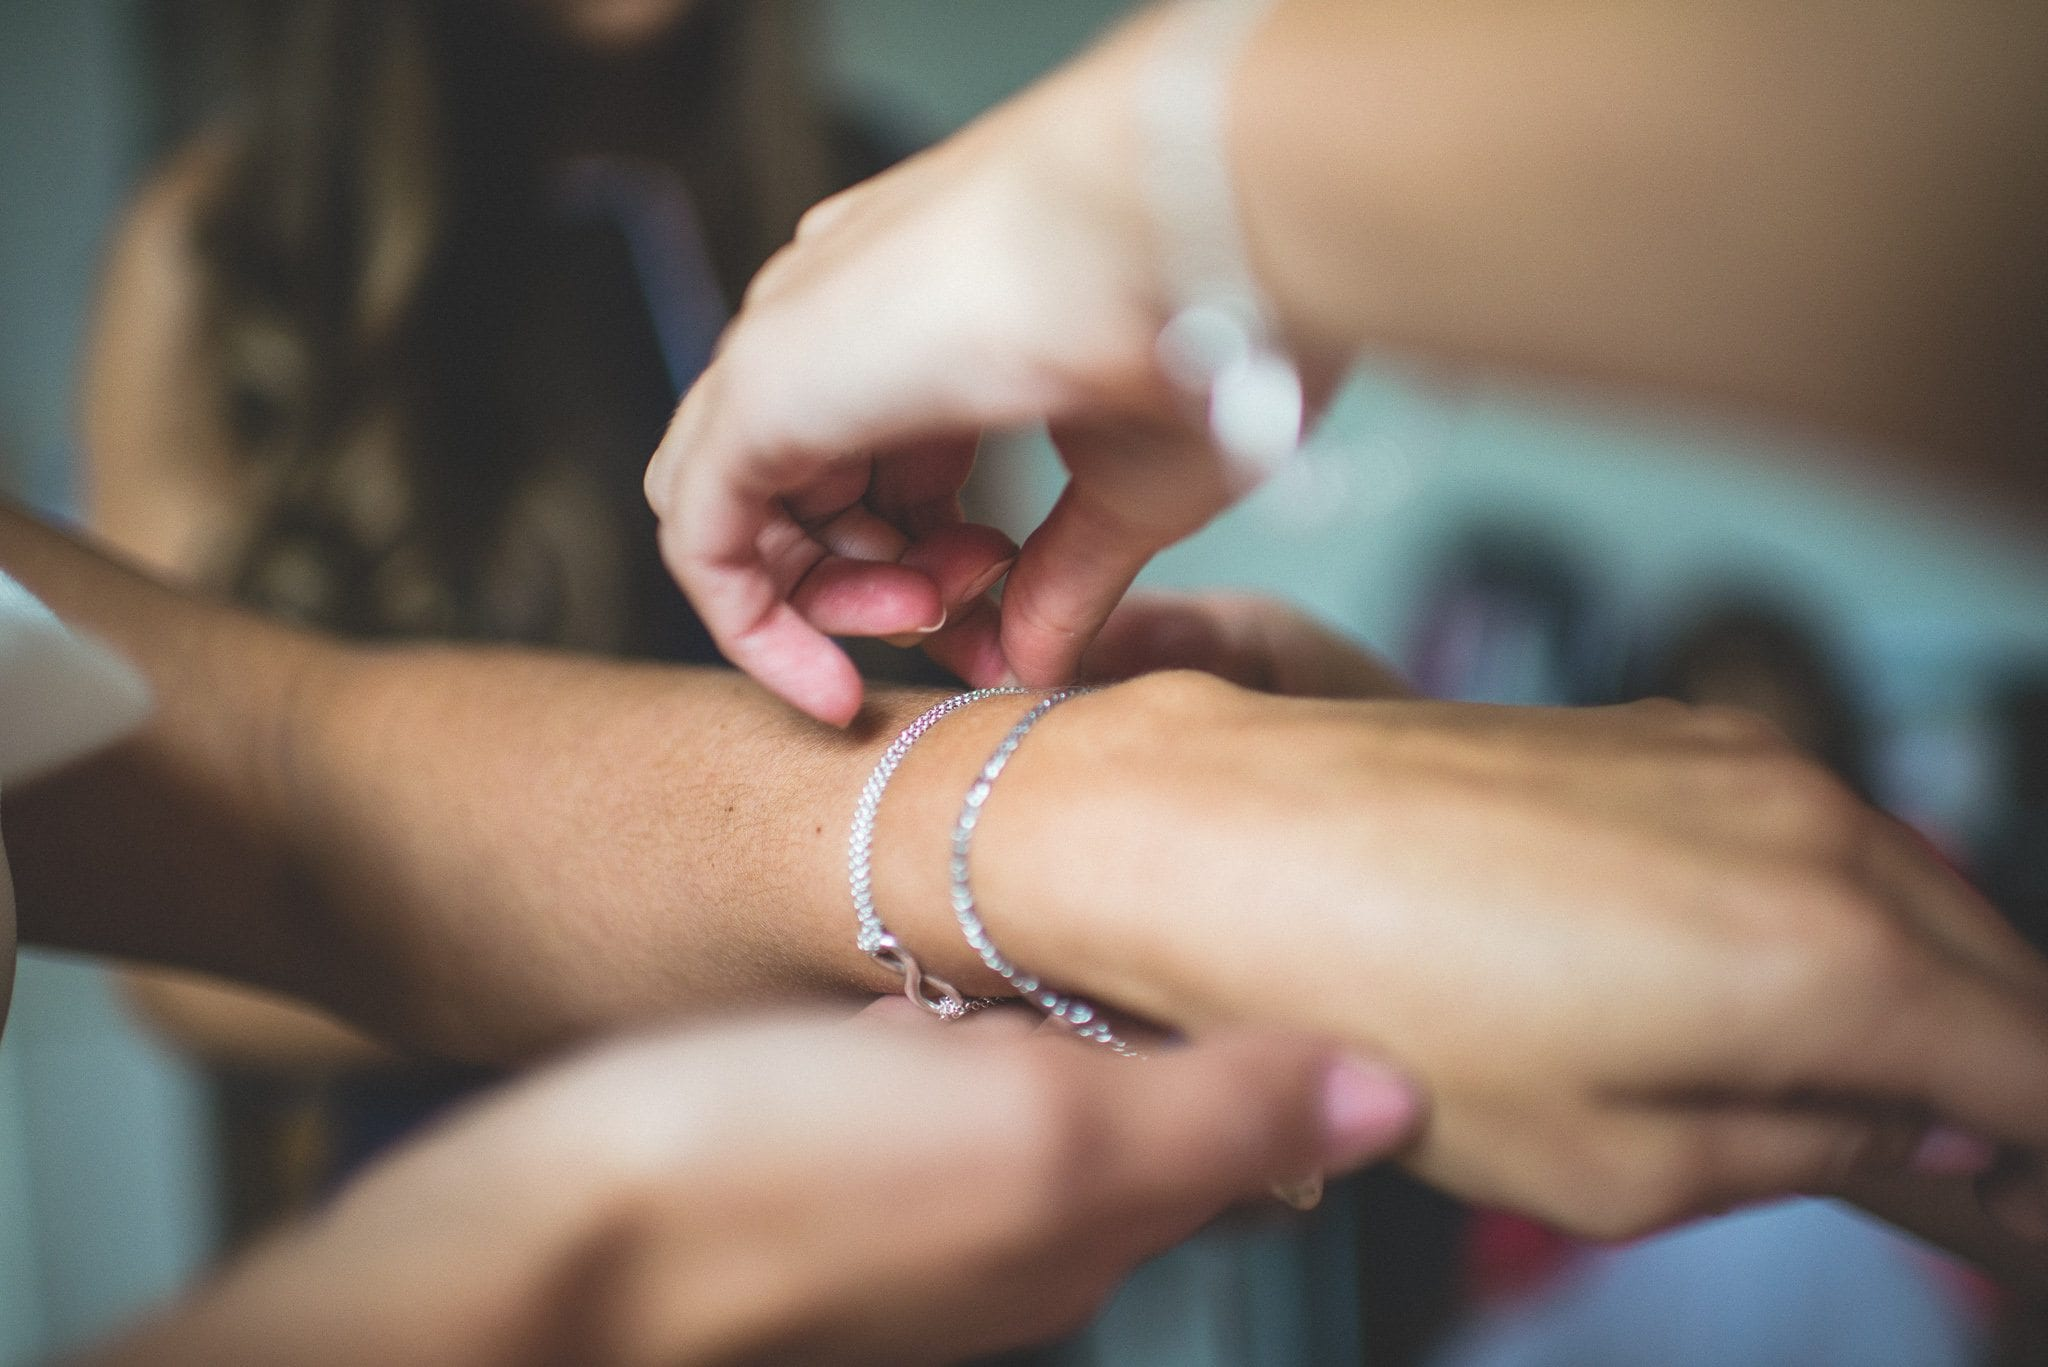 Ilaria's bridesmaids fasten delicate silver bracelets around her wrist as she gets ready